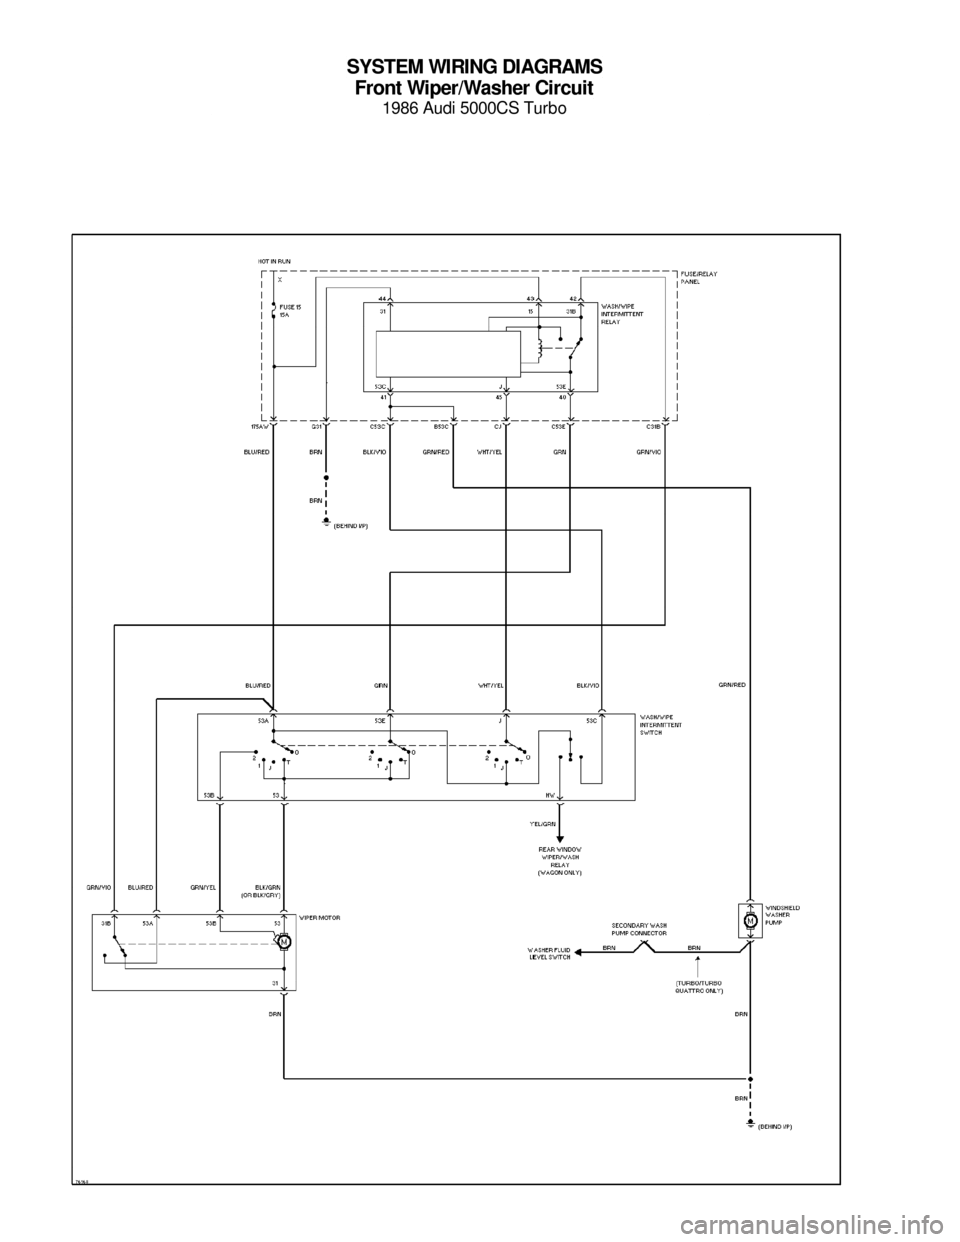 medium resolution of audi 5000cs 1986 c2 system wiring diagram volkswagen seat wiring air cooled vw wiring diagram